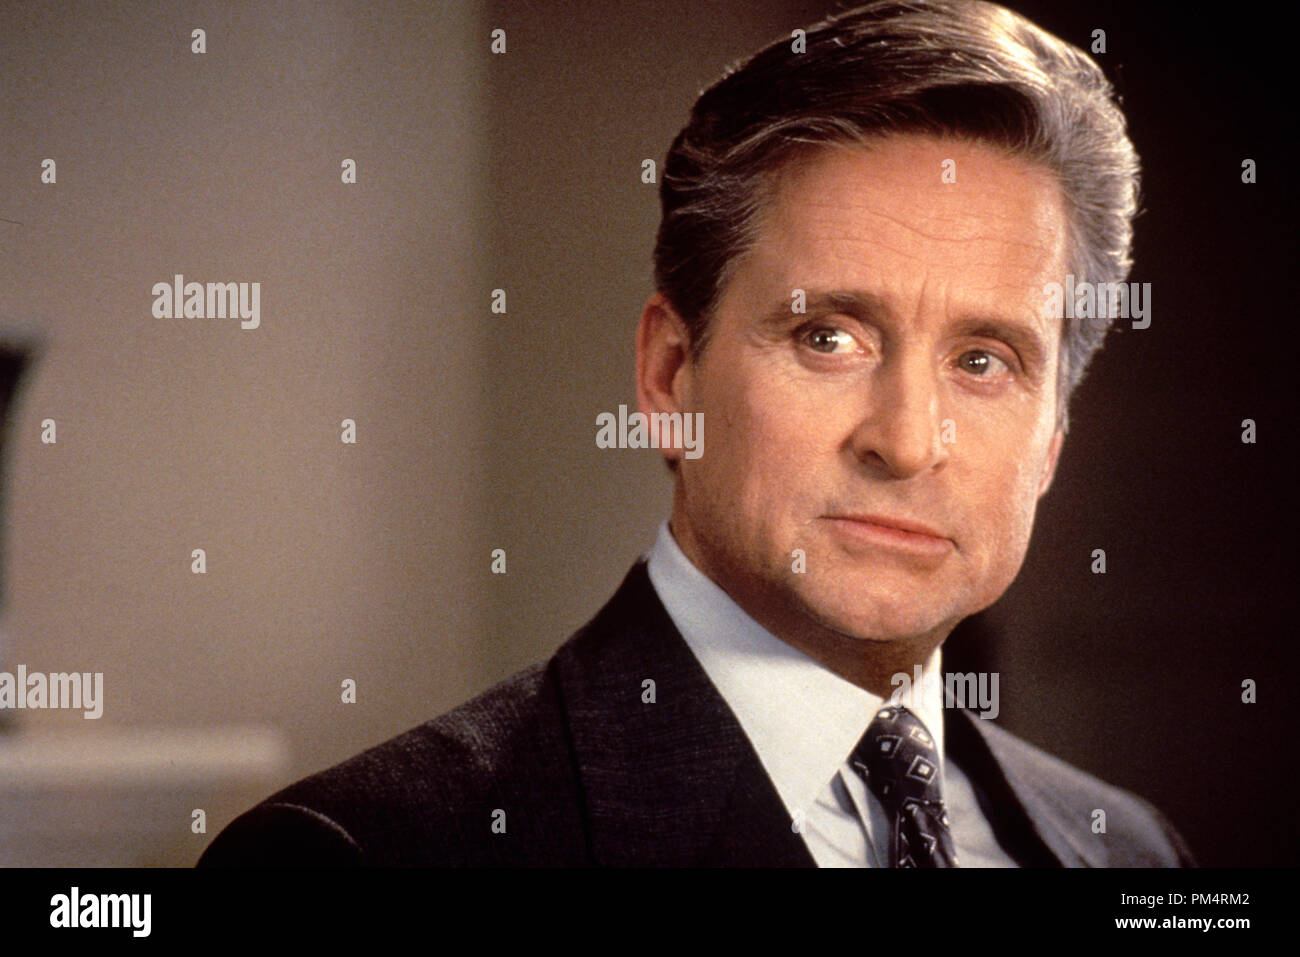 'The American President' 1995 Michael Douglas - Stock Image